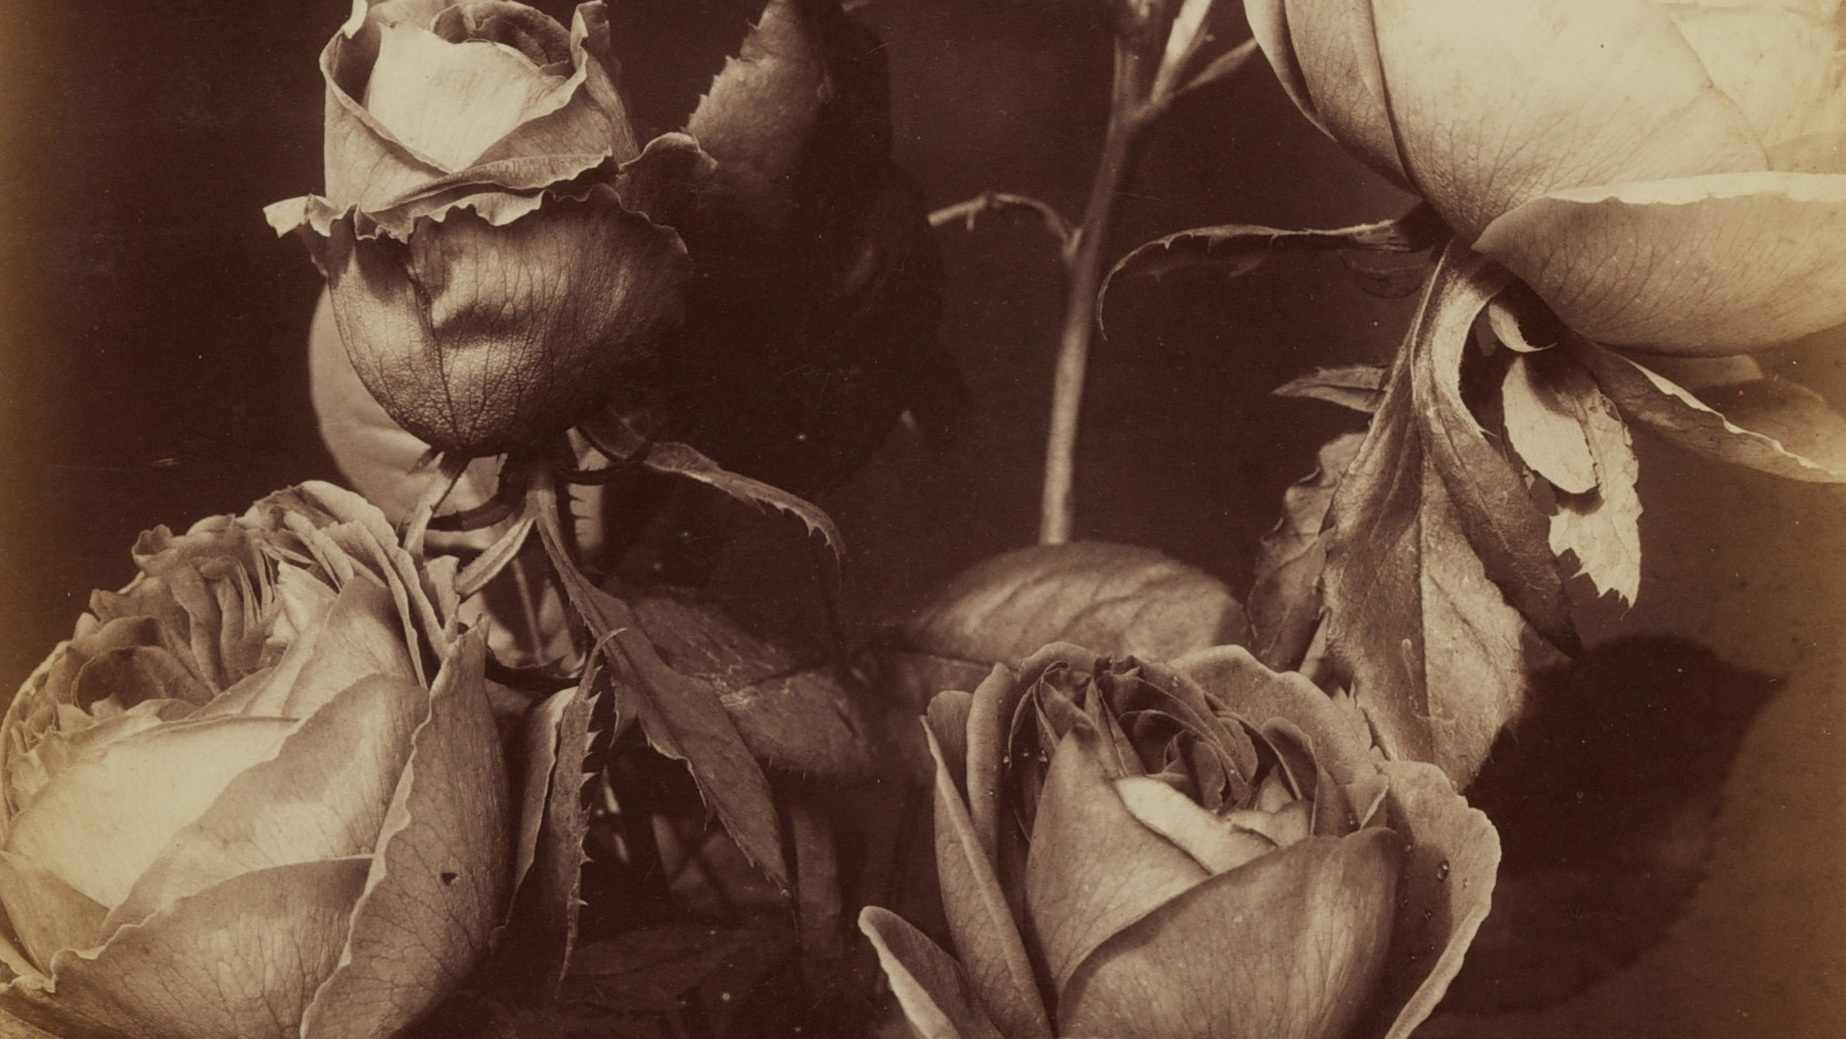 A black-and-white photograph shows a bouquet of mixed roses at various stages of decay against a dark backdrop.